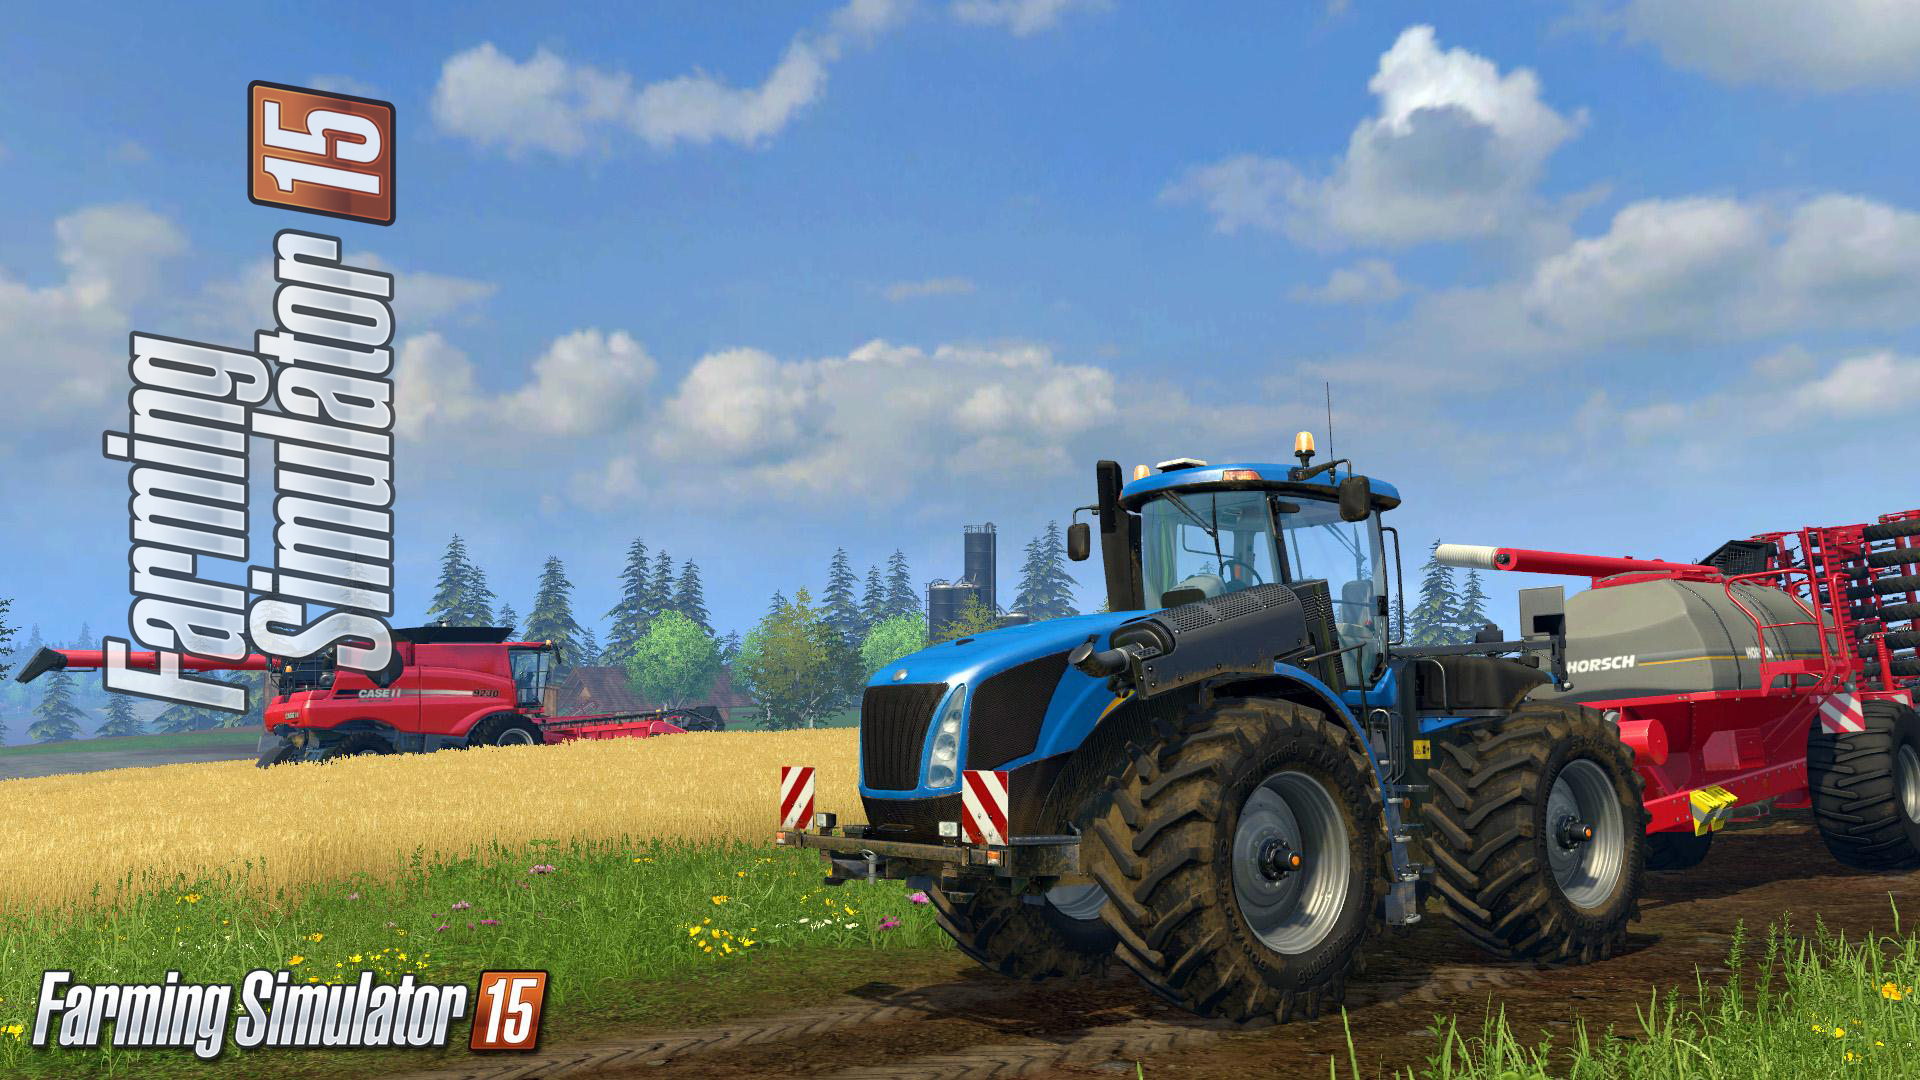 farming simulator 15 free download full version windows 7